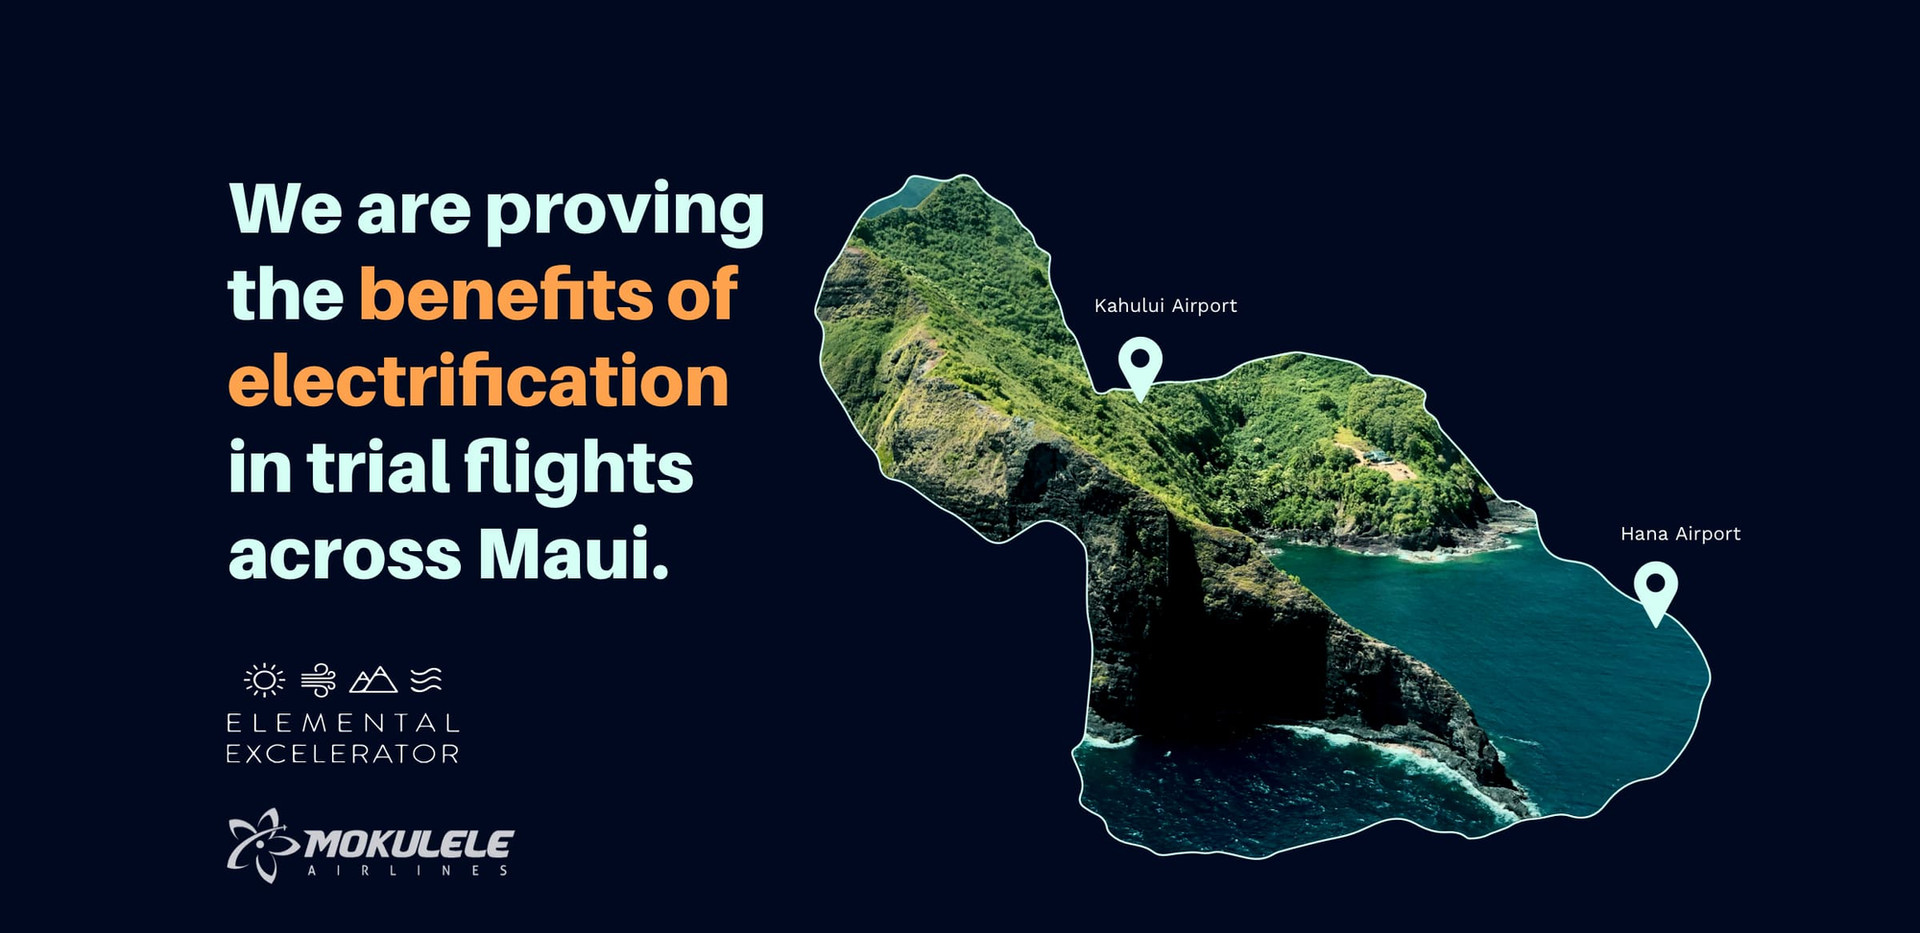 "Map of Maui with geographic markers at Kahului Airport and Hana Airport. Text reads ""We are proving the benefits of electrification in trial flights across Maui"". Partner logos below: Elemental Excelerator, and Mokulele Airlines"